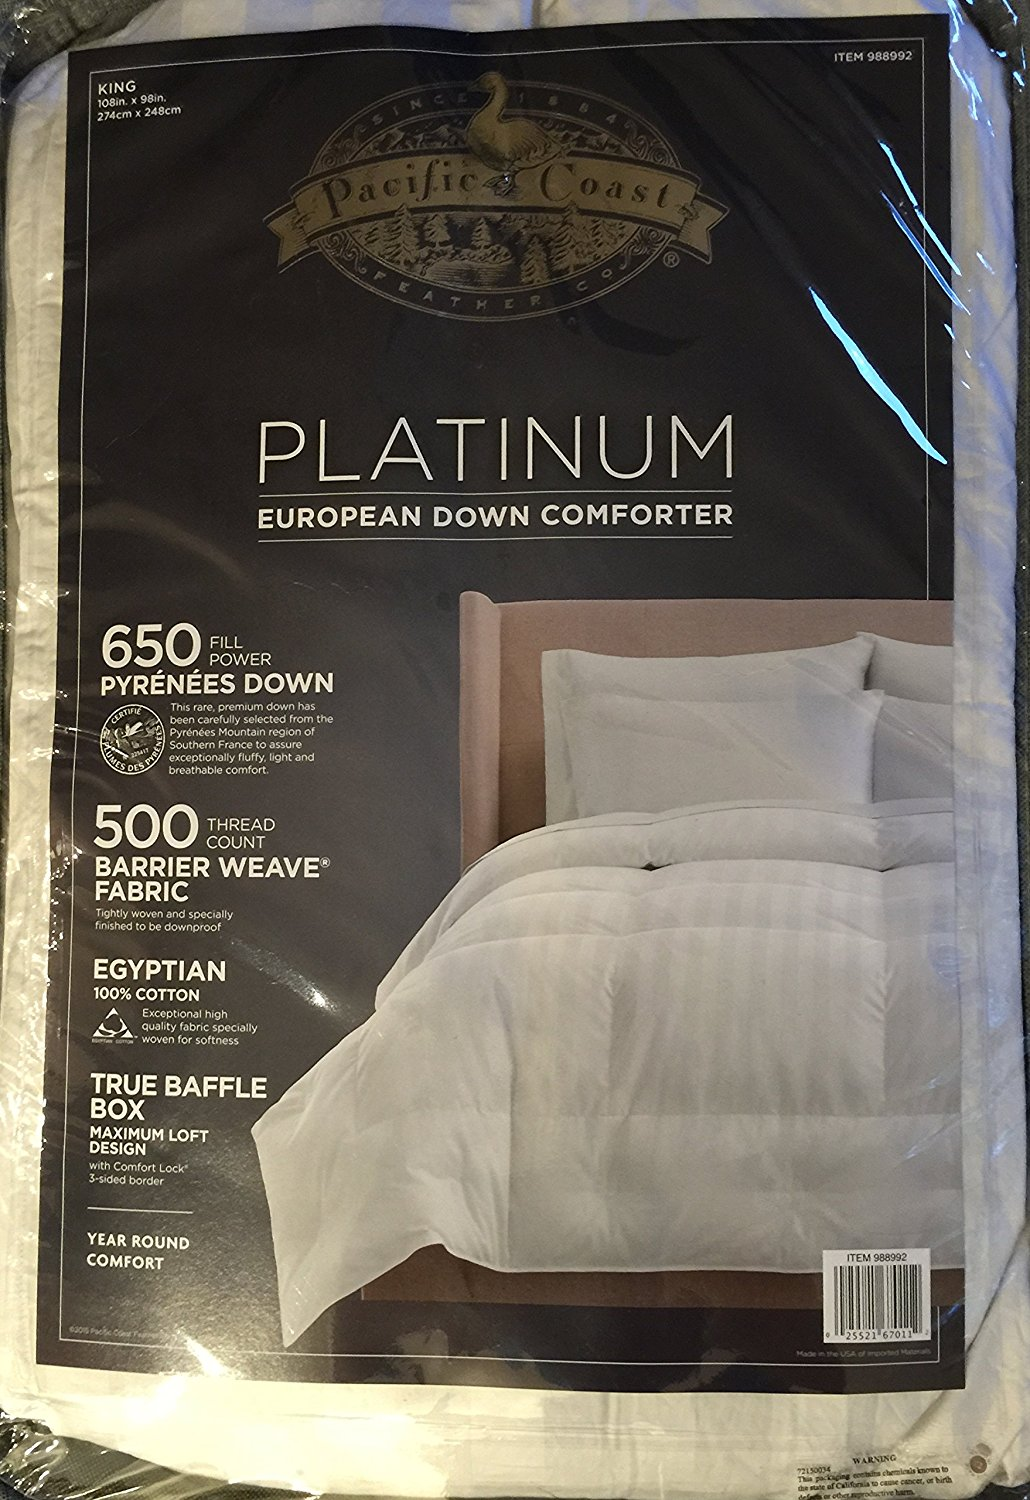 Down Comforter Amazon | Pacific Coast Comforter | Pacific Coast Feather Down Comforter